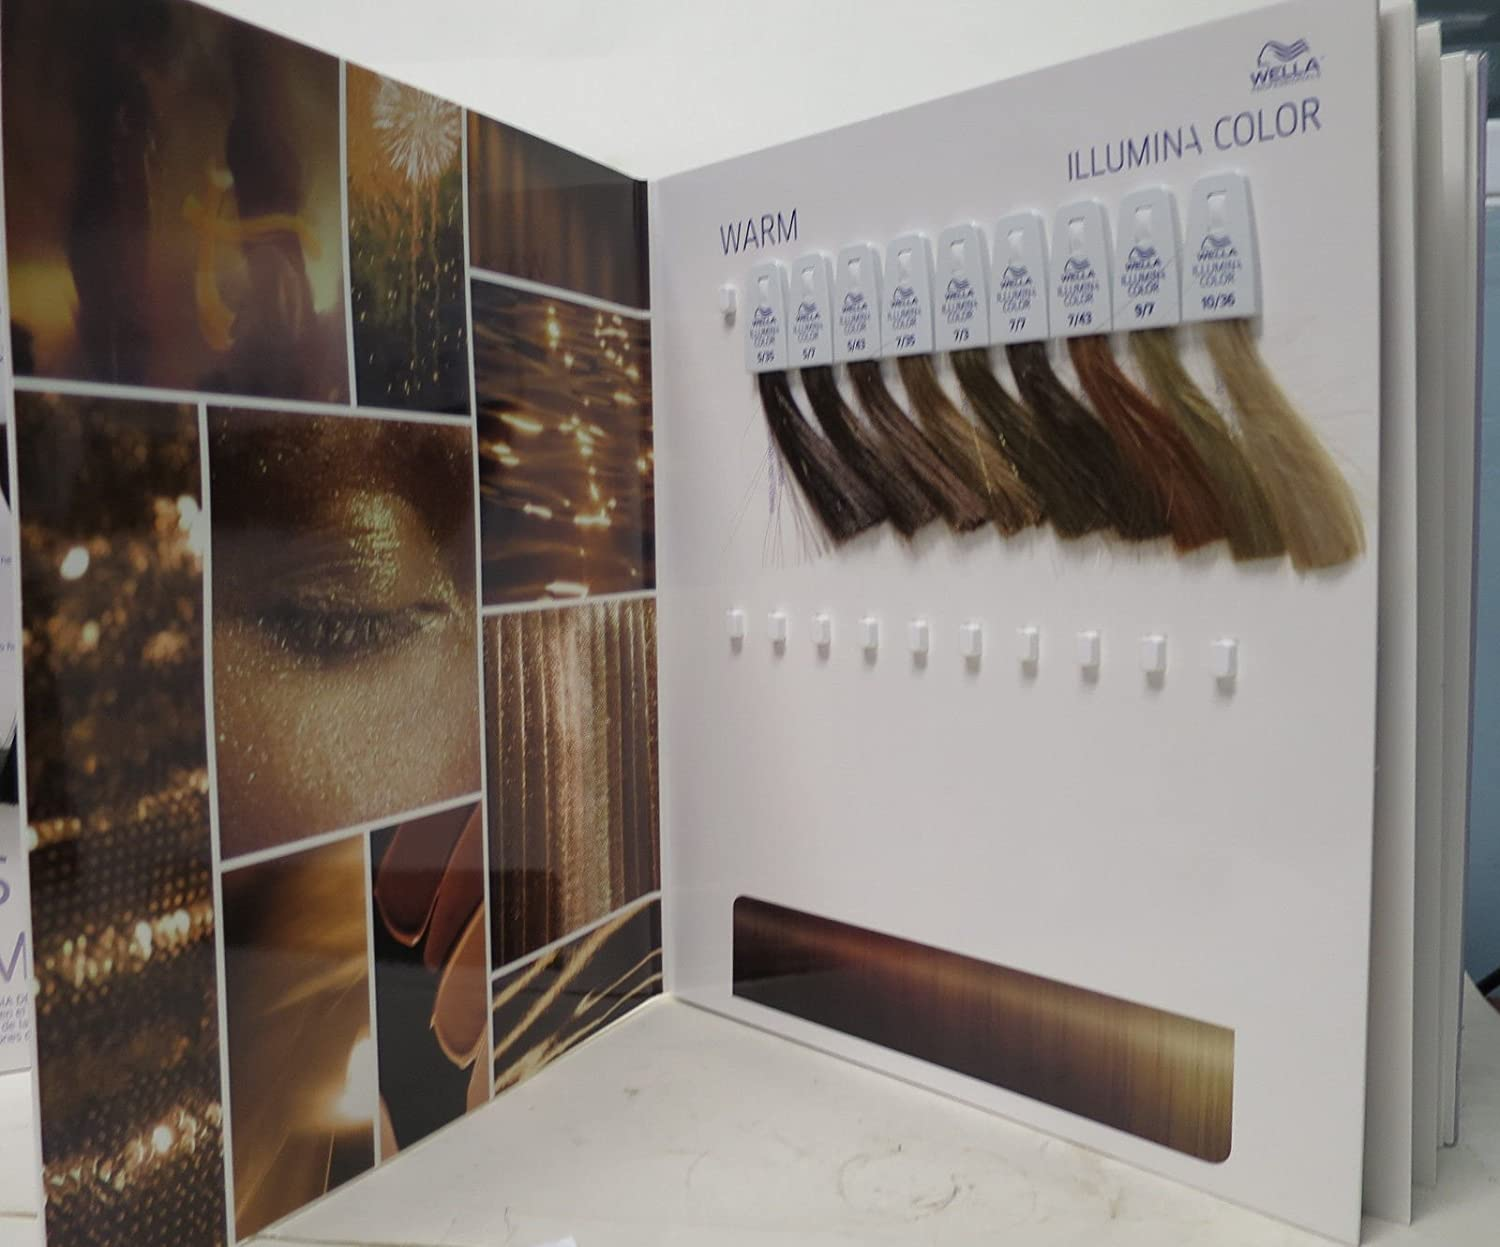 amazoncom wella professionals illumina hair color swatch book binder beauty - Hair Color Book